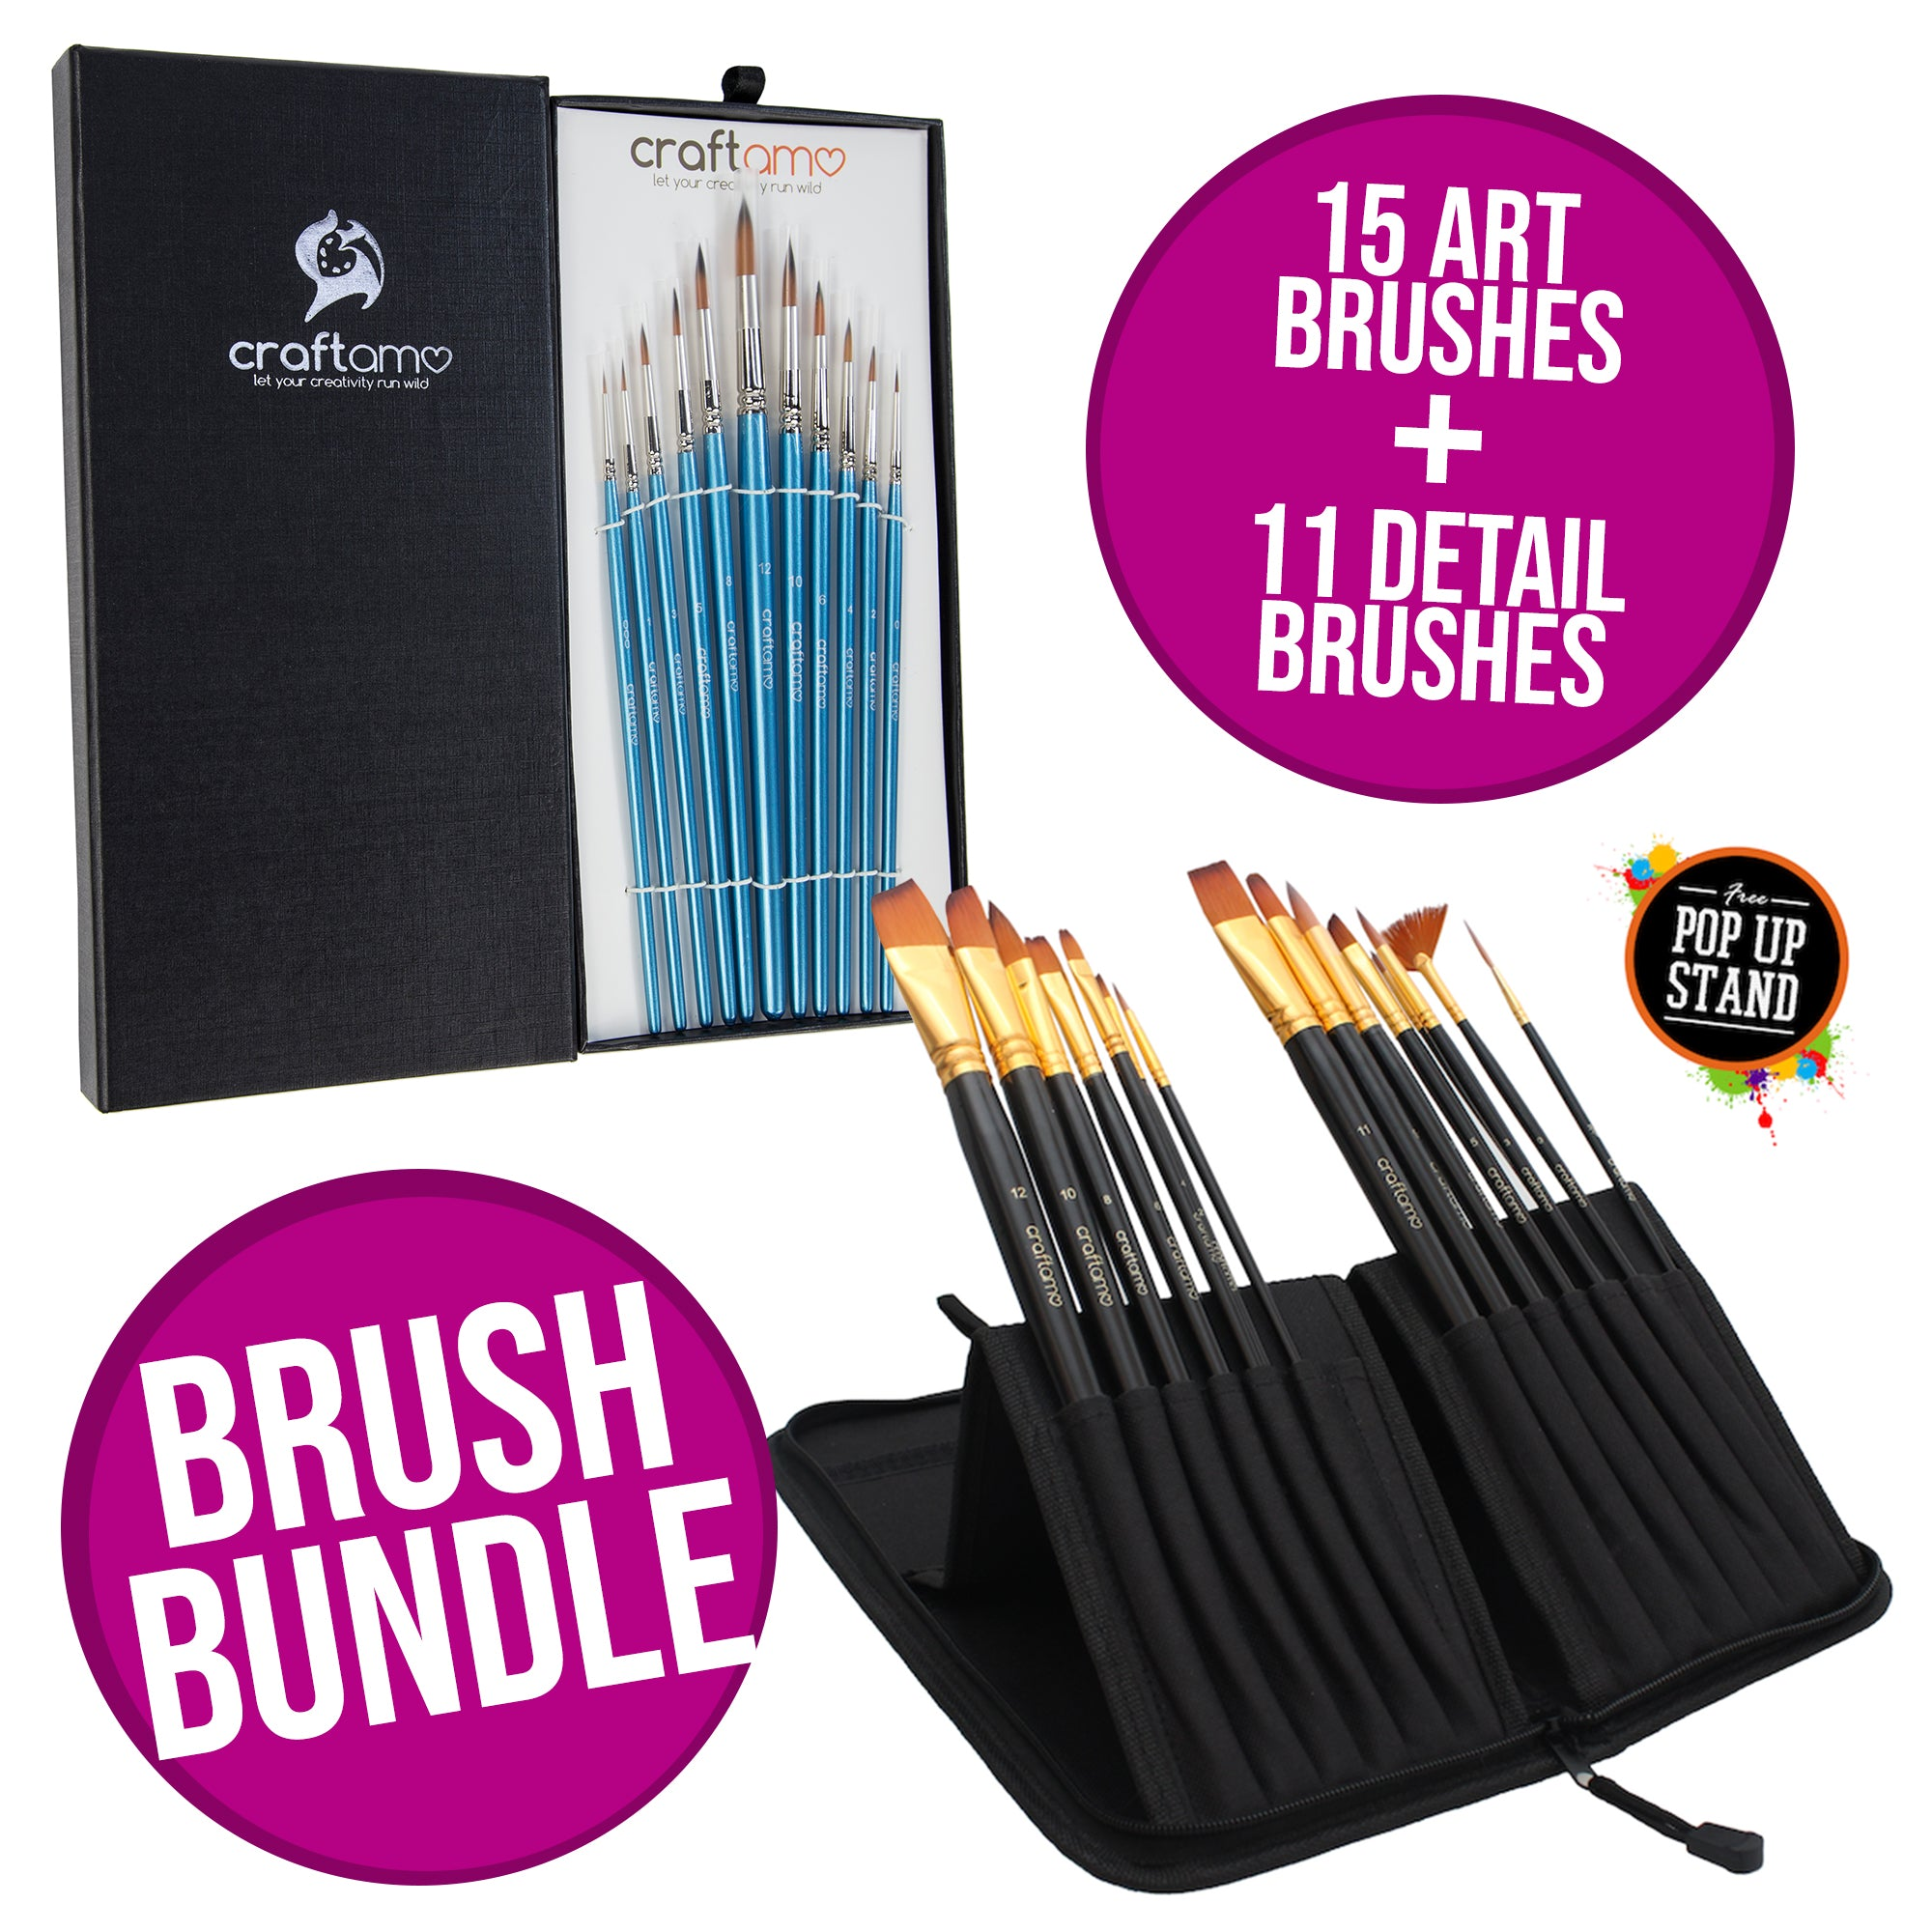 BRUSH BUNDLE 1